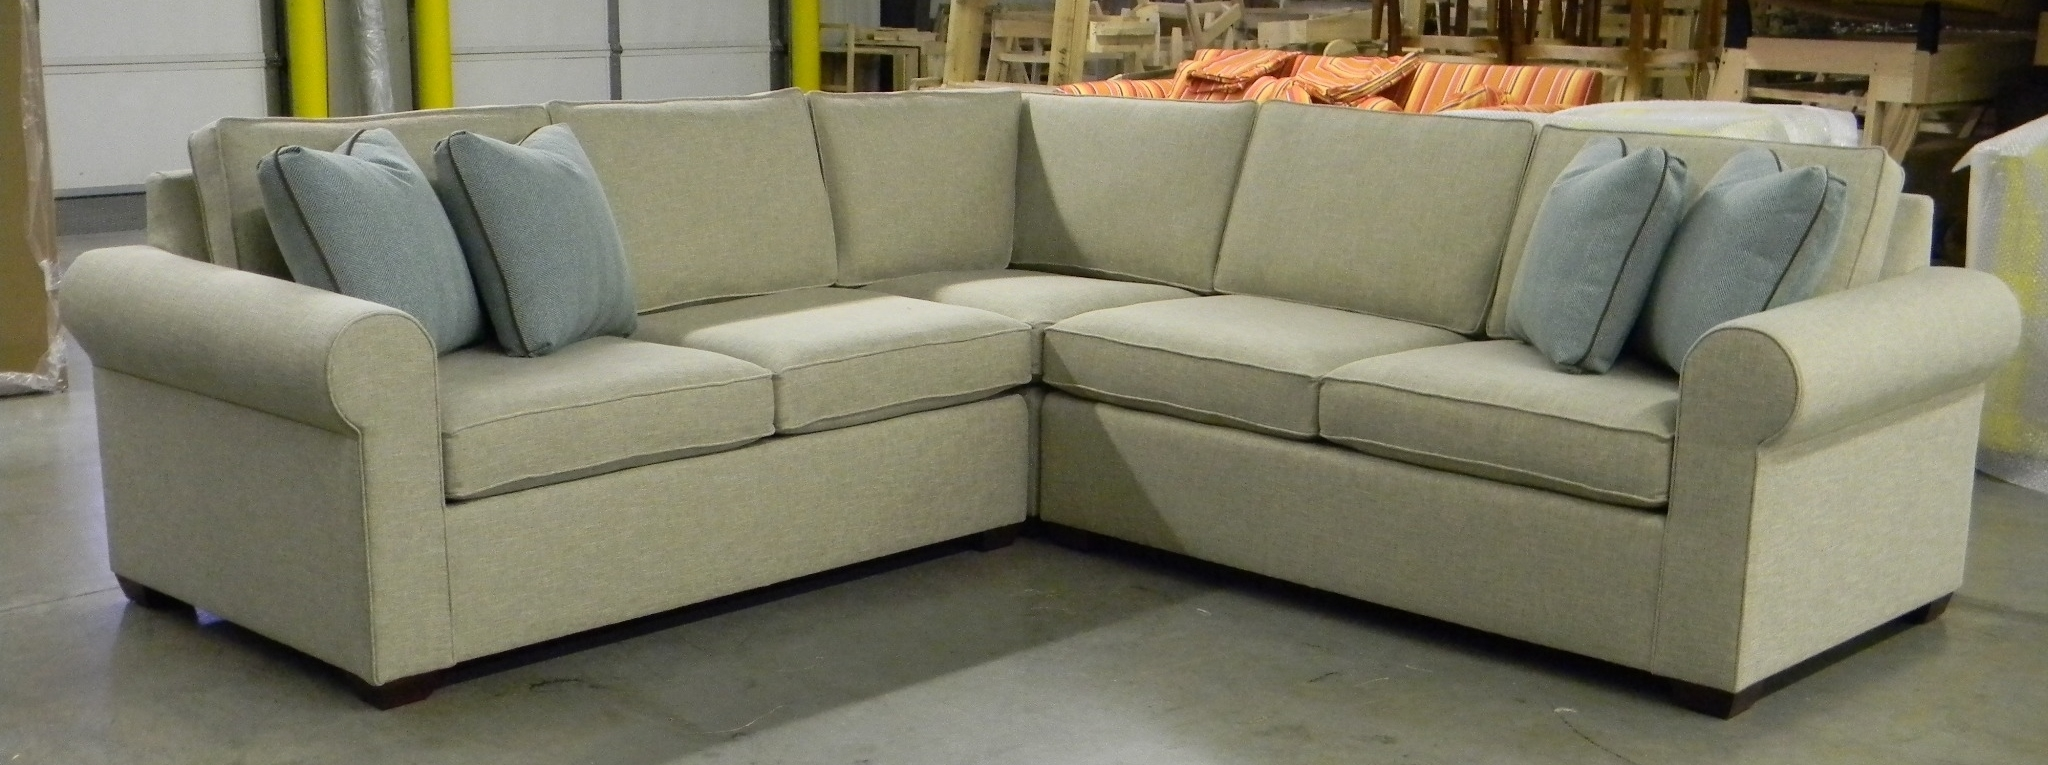 Carolina Chair Testimonials Reviews Happy Customers 2016 Custom With Sectional Sofas In North Carolina (View 4 of 10)